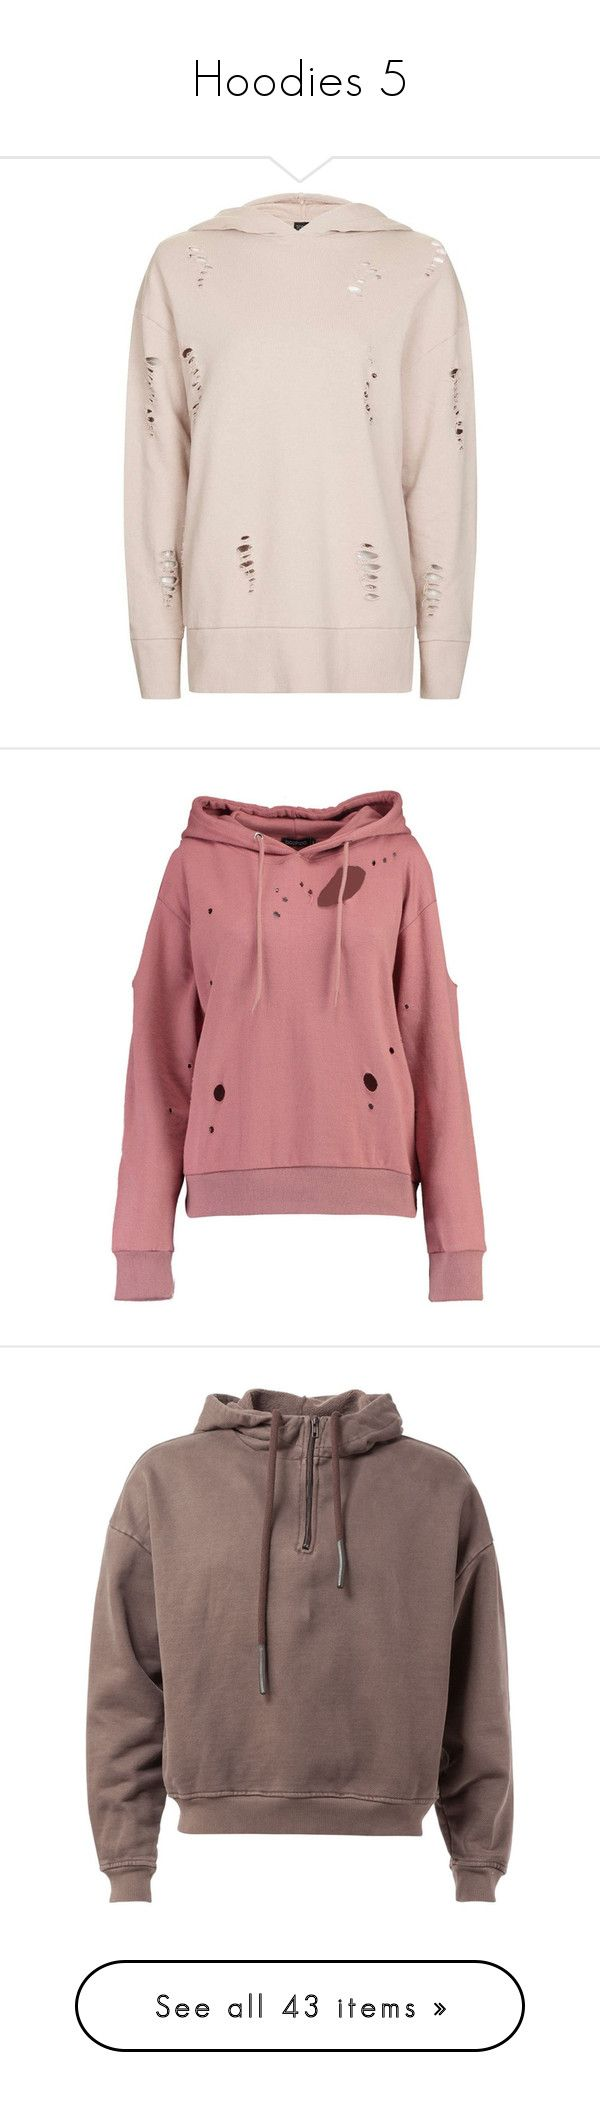 """""""Hoodies 5"""" by musicmelody1 ❤ liked on Polyvore featuring tops, hoodies, pink hoodies, distressed hoodie, sweatshirt hoodies, distressed top, topshop tops, polka dot crop top, cold shoulder tops and bralet tops"""